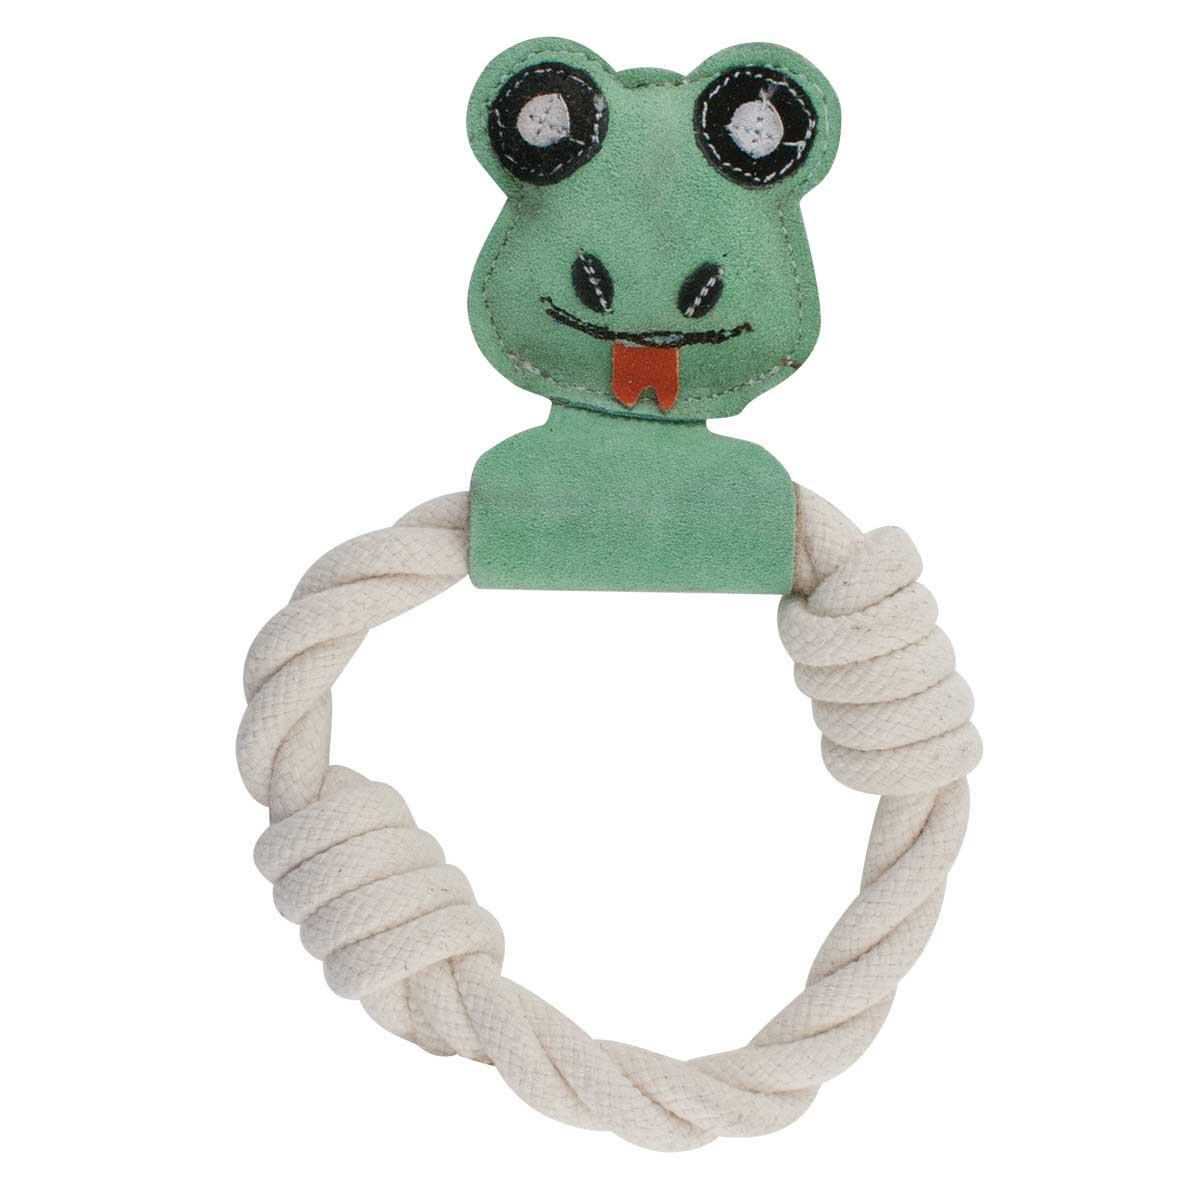 Dawgeee Toy Natural Genuine Leather Frog With Cotton Rope Ring Toy 10 inches